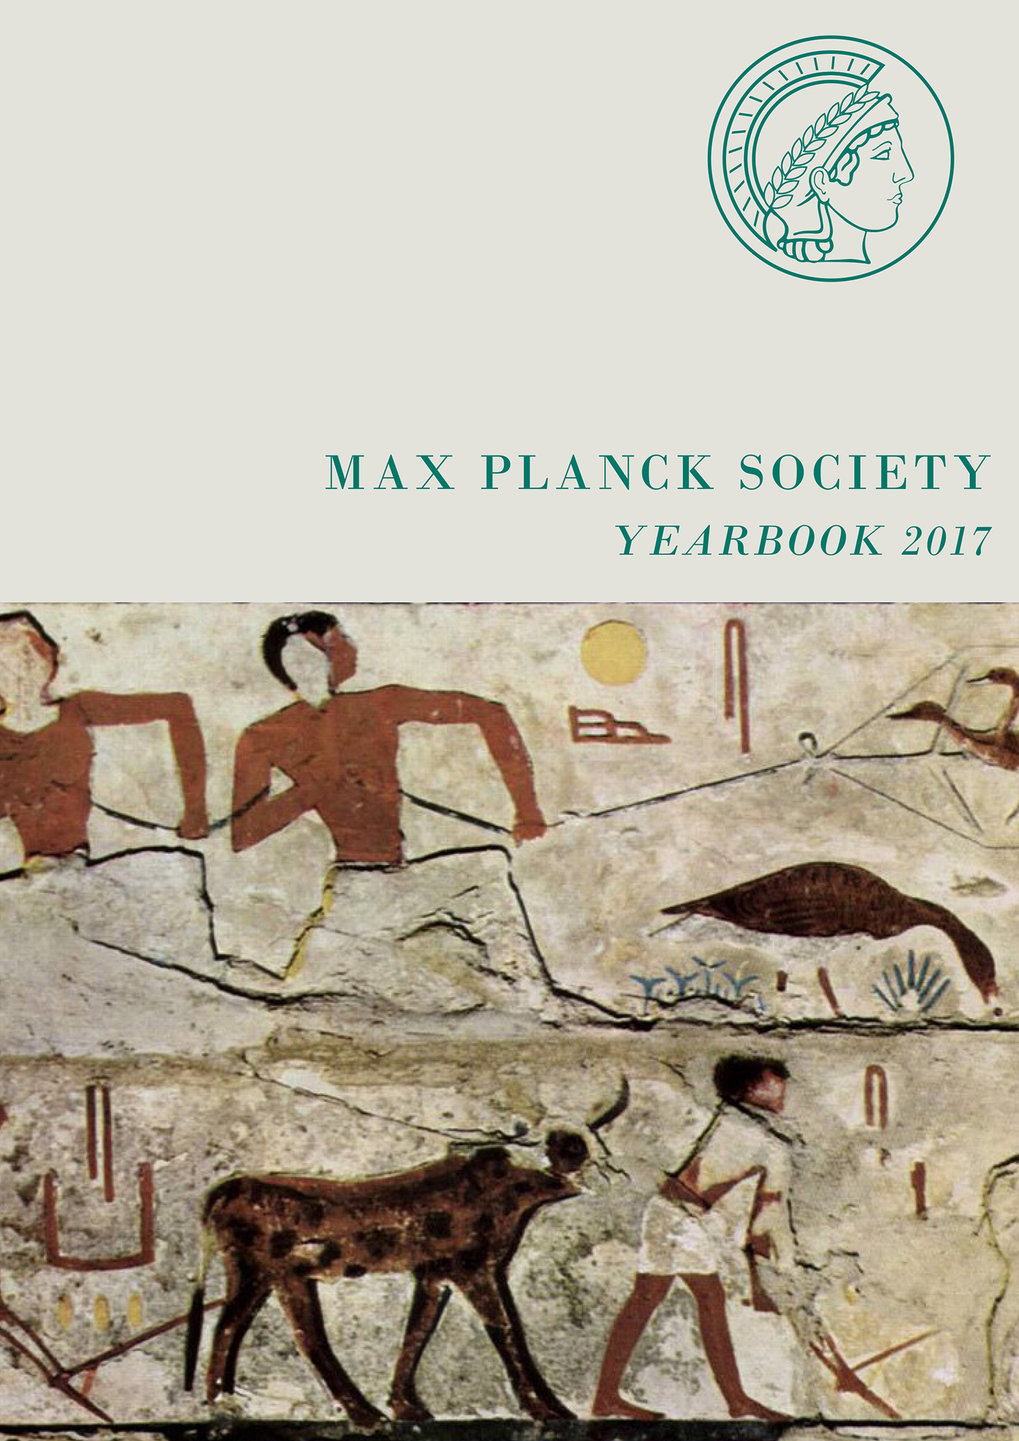 The Yearbook of the Max Planck Society (titles and abstracts available in English) renders account on the scientific research performed at the Max Pla